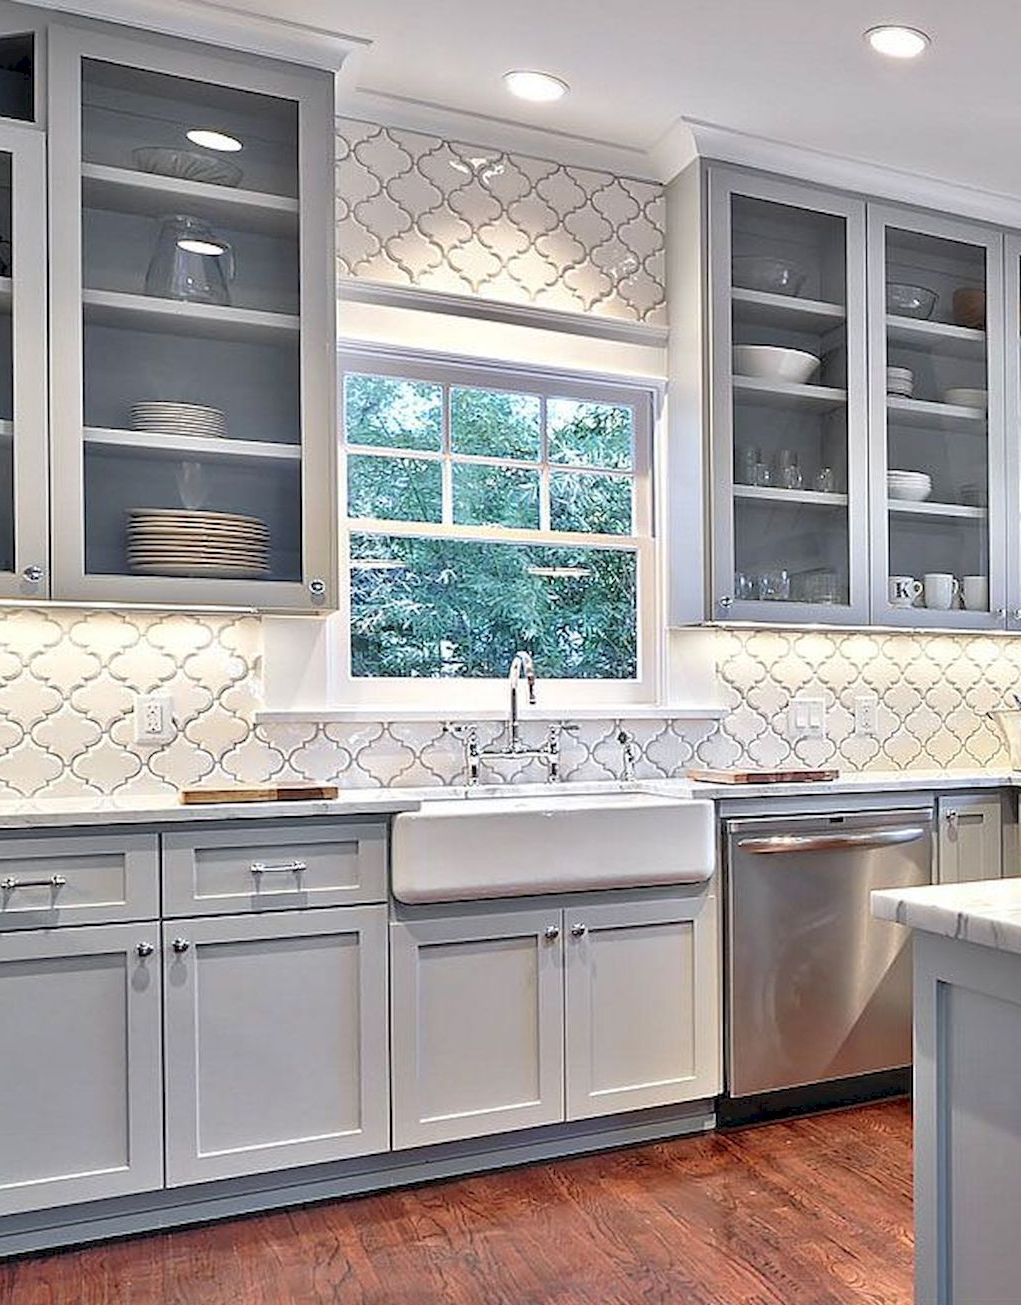 35+ Kitchen Cabinet Design Look Incredibly Creative | Cabinet design ...